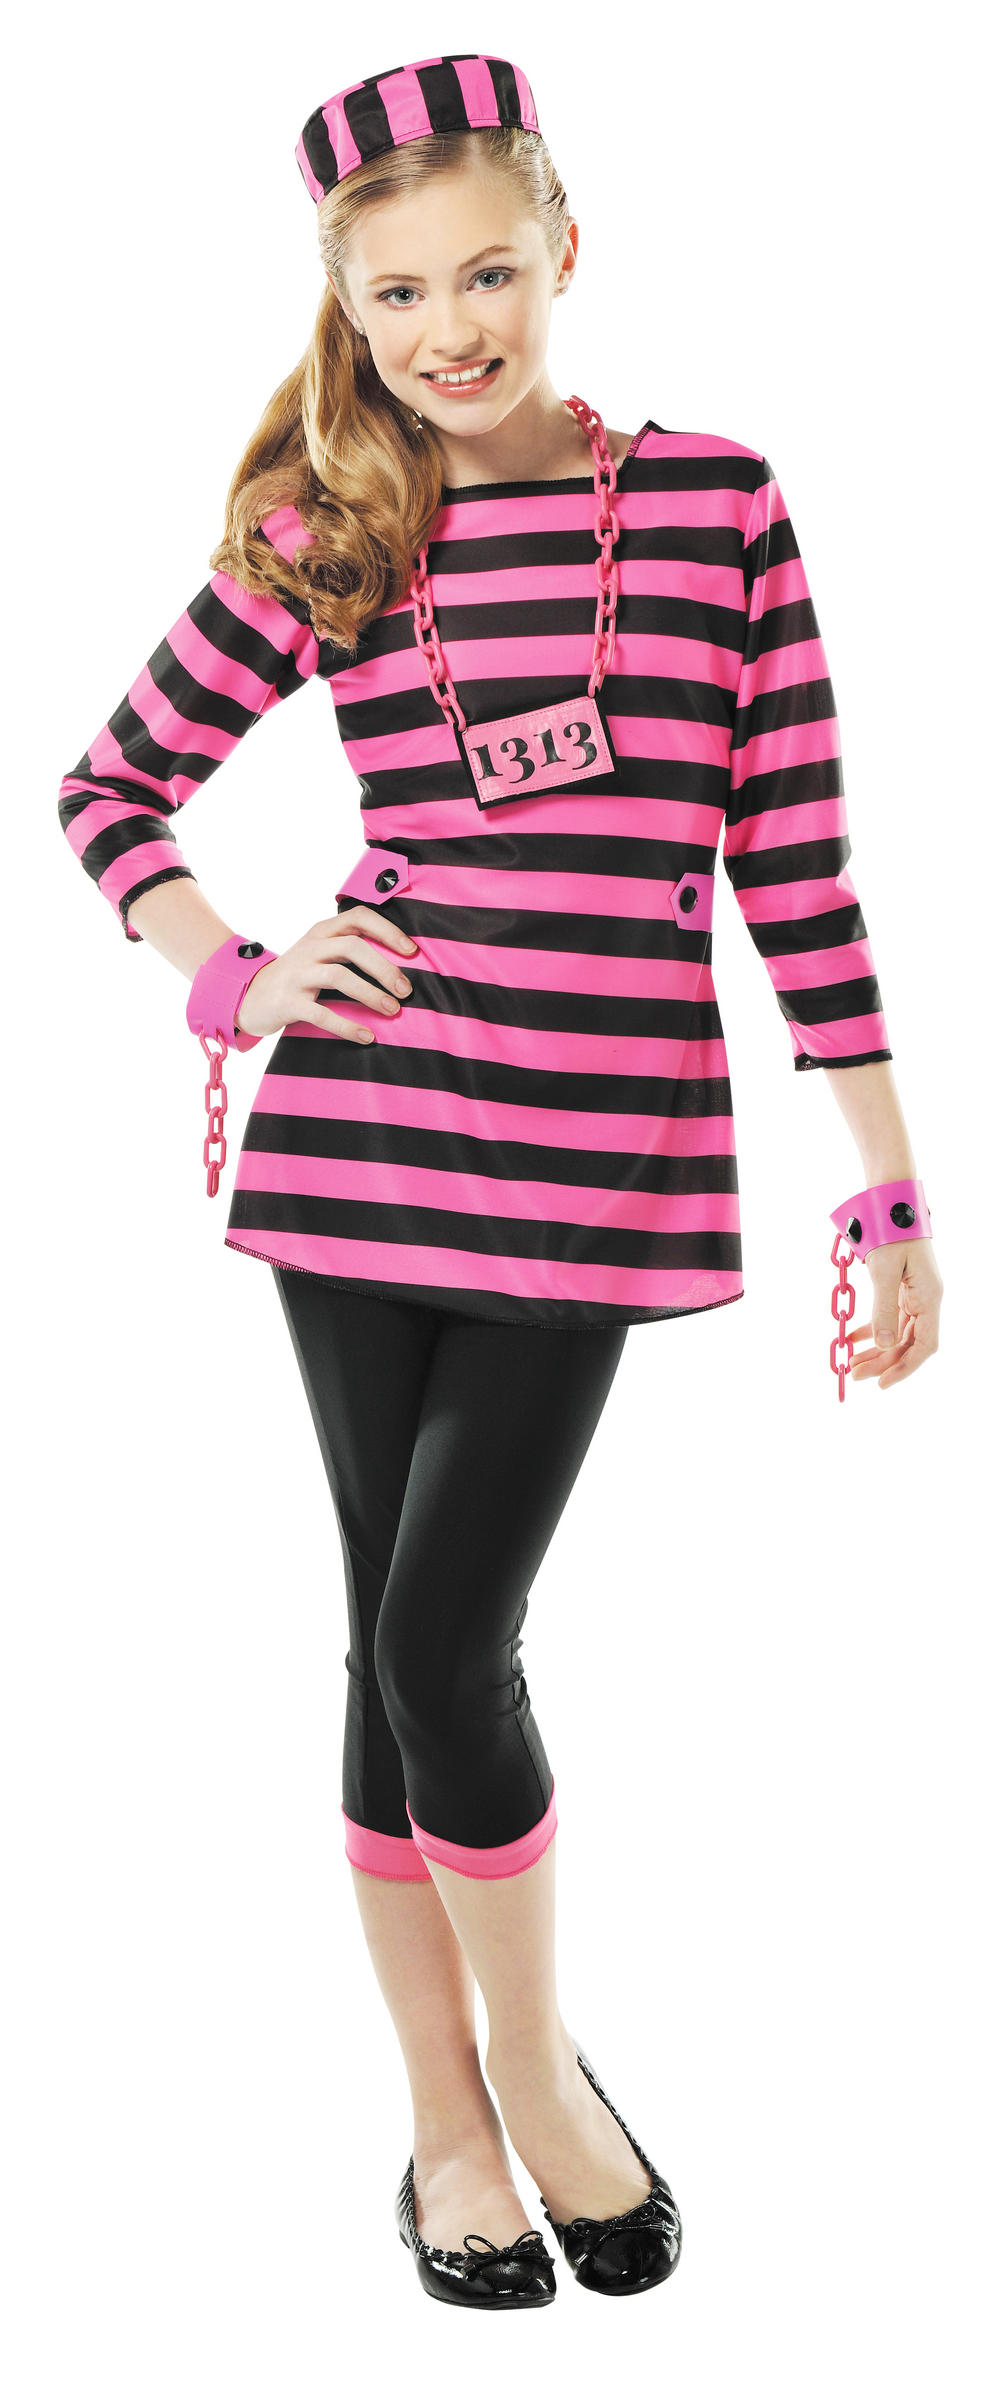 Miss Dee Meaner Costume